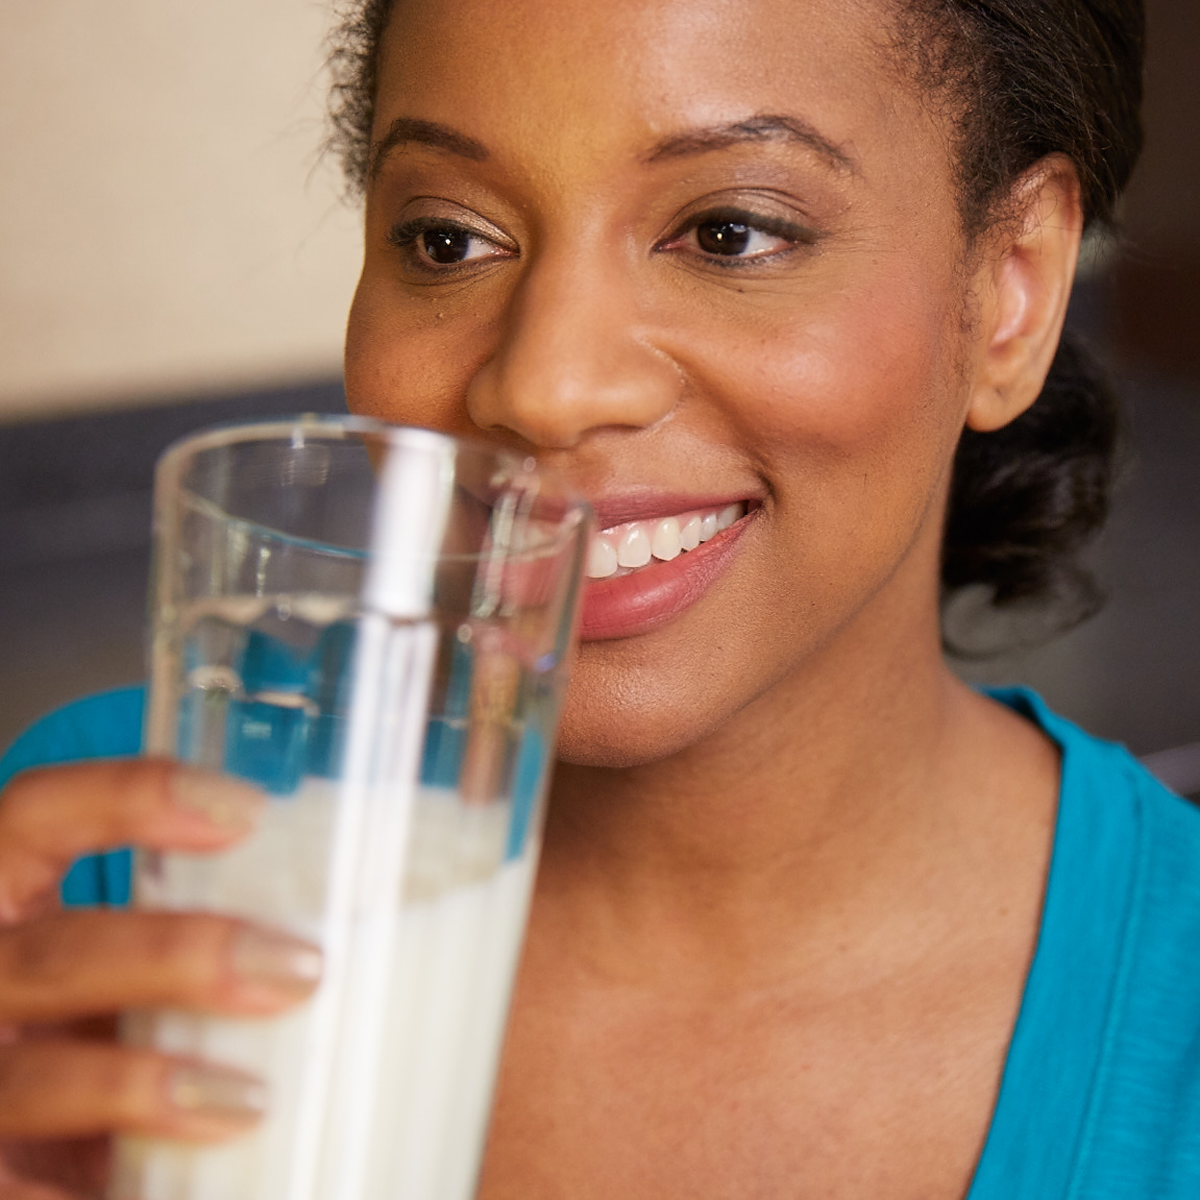 woman drinking a glass of milk and smiling